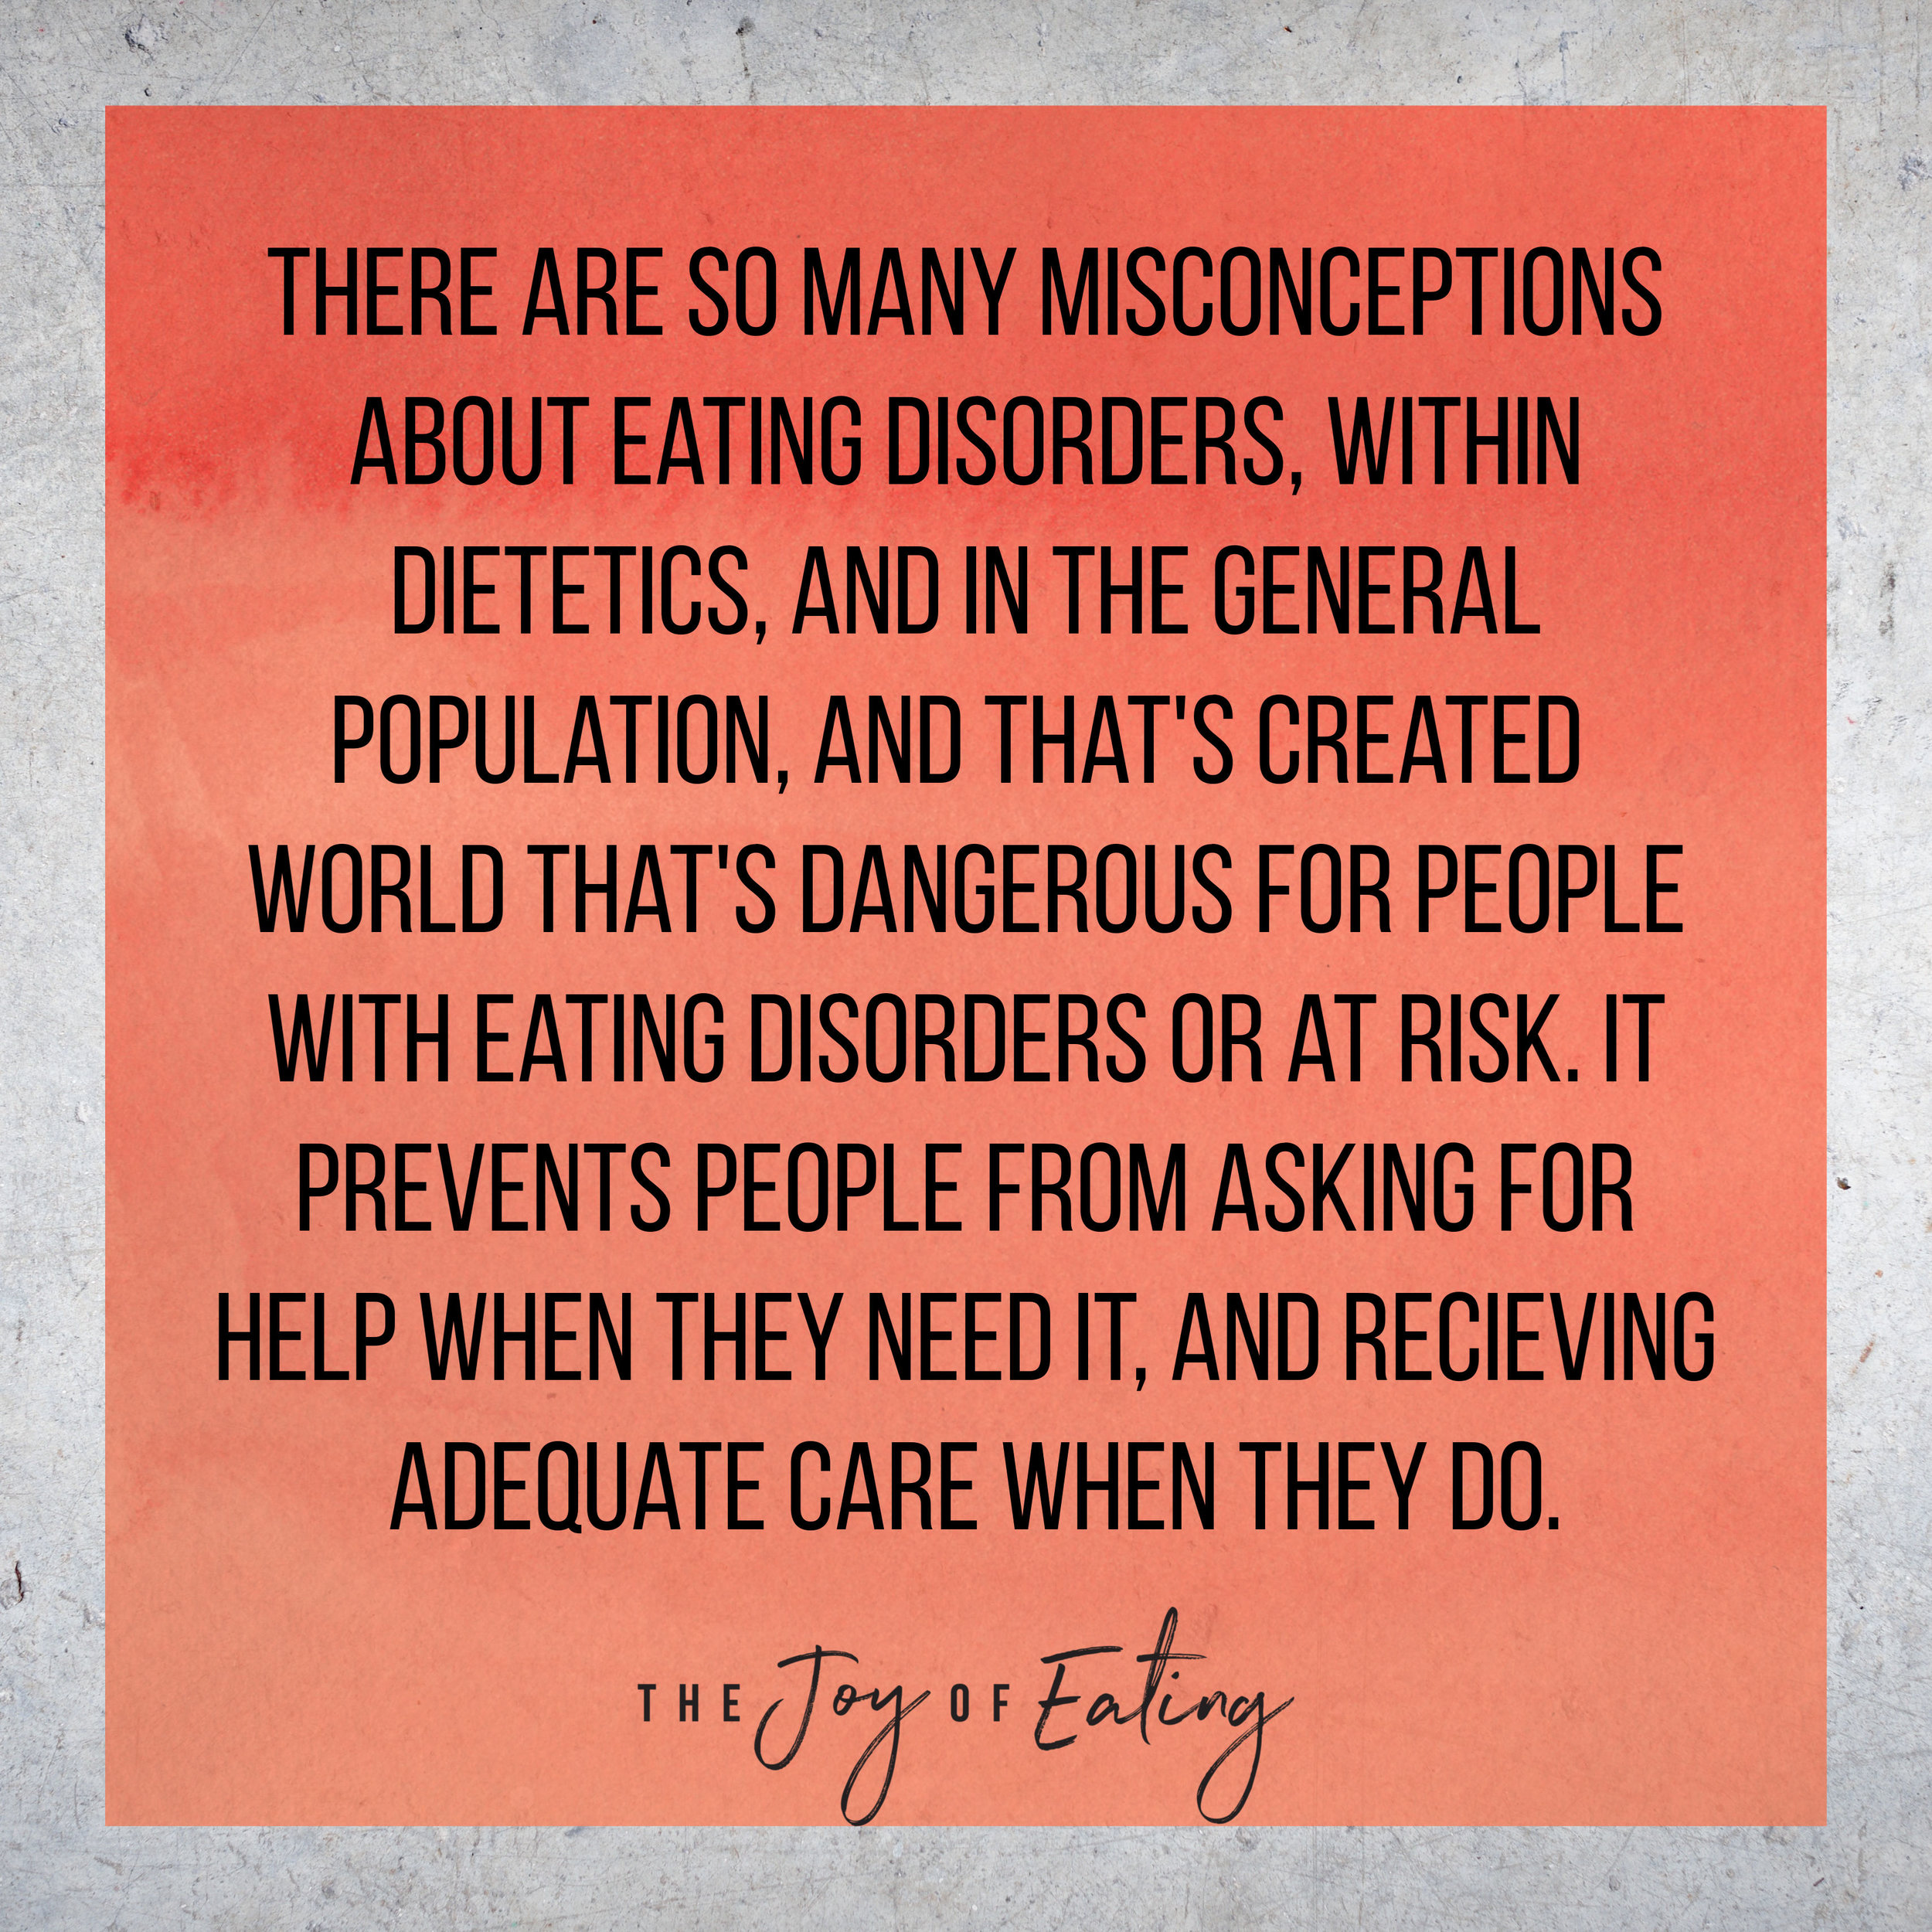 What I wish more people understood about eating disorders. #edrecovery #bingeeating #intuitiveeating #healthateverysize #bodypositive